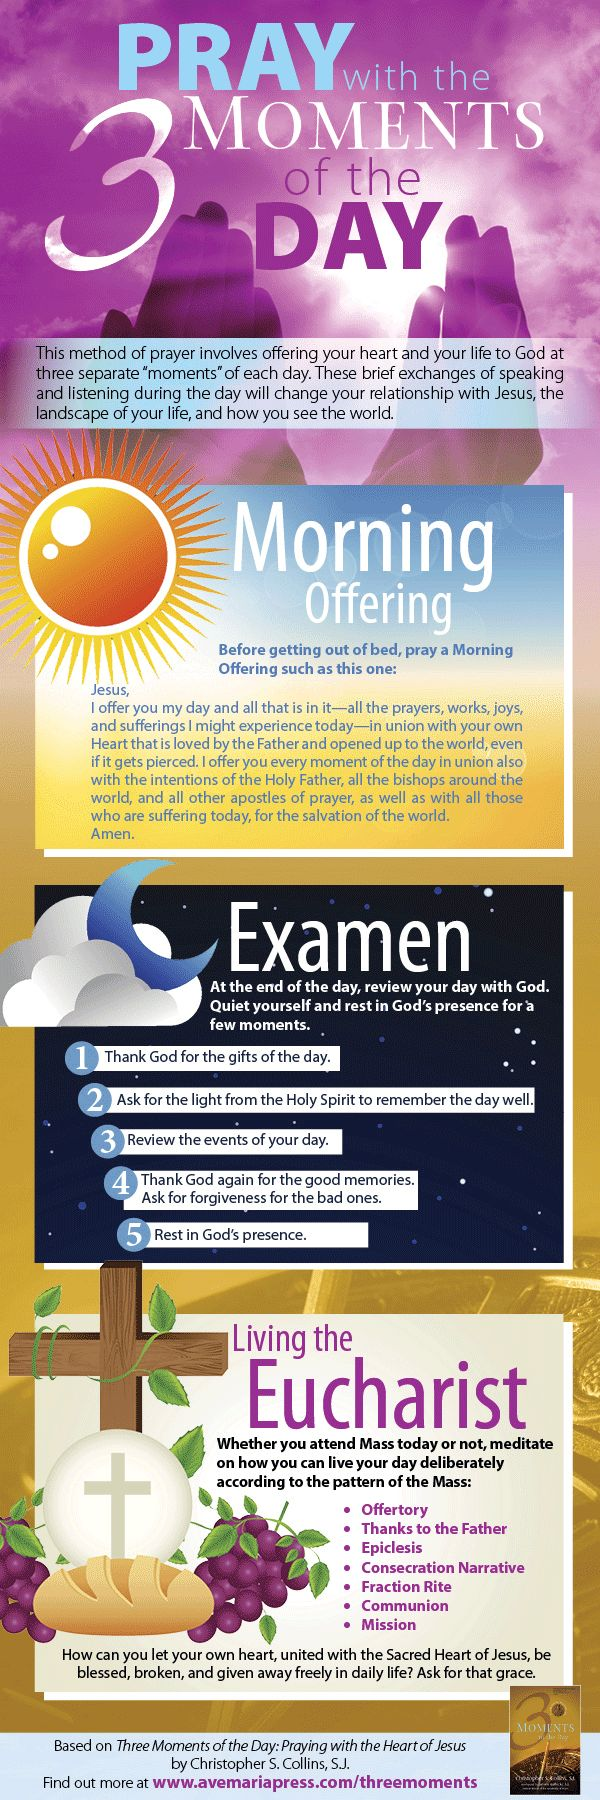 Pray with the Three Moments of the Day: 1) Morning Offering, 2) Examen, and 3) Living the Eucharist